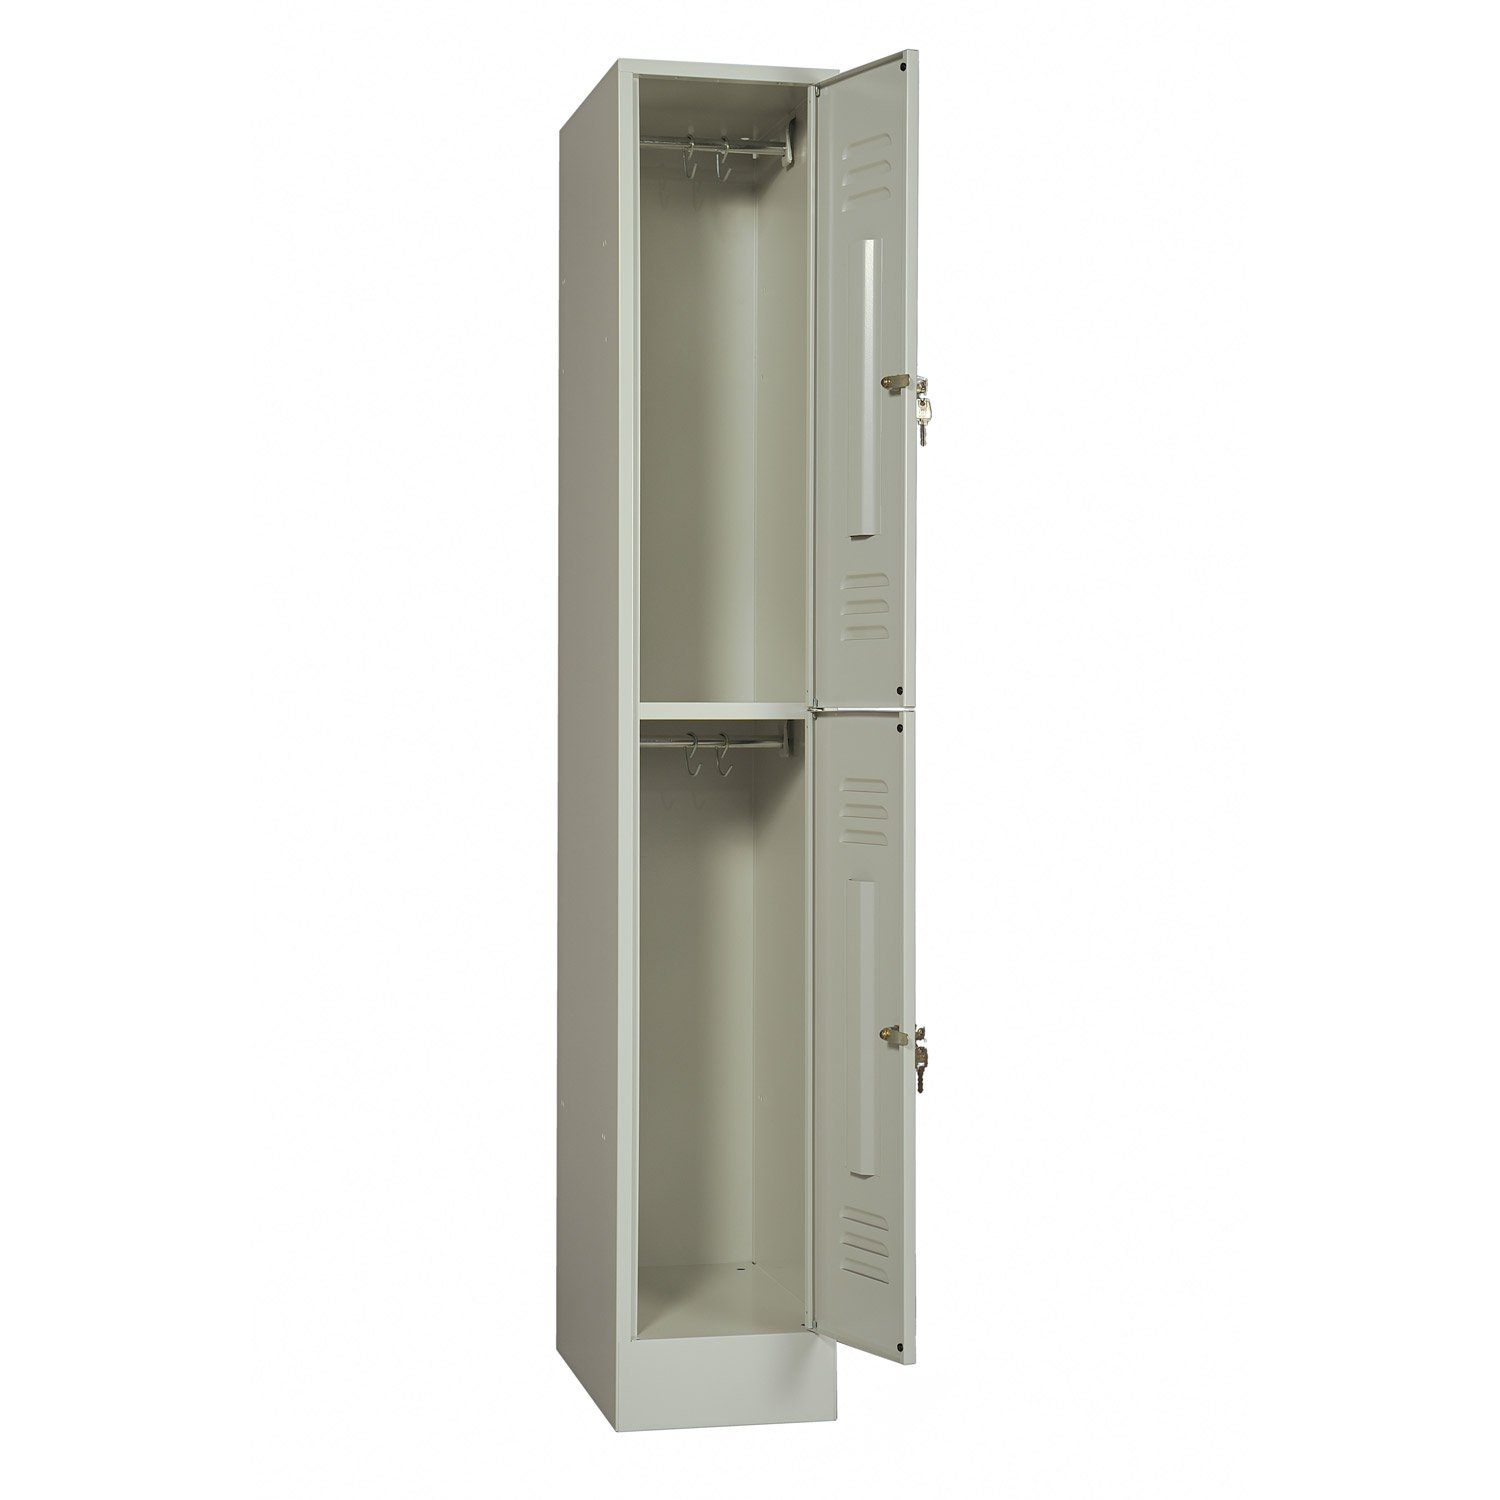 Porte vestiaire metallique 5 id es de d coration for Porte french